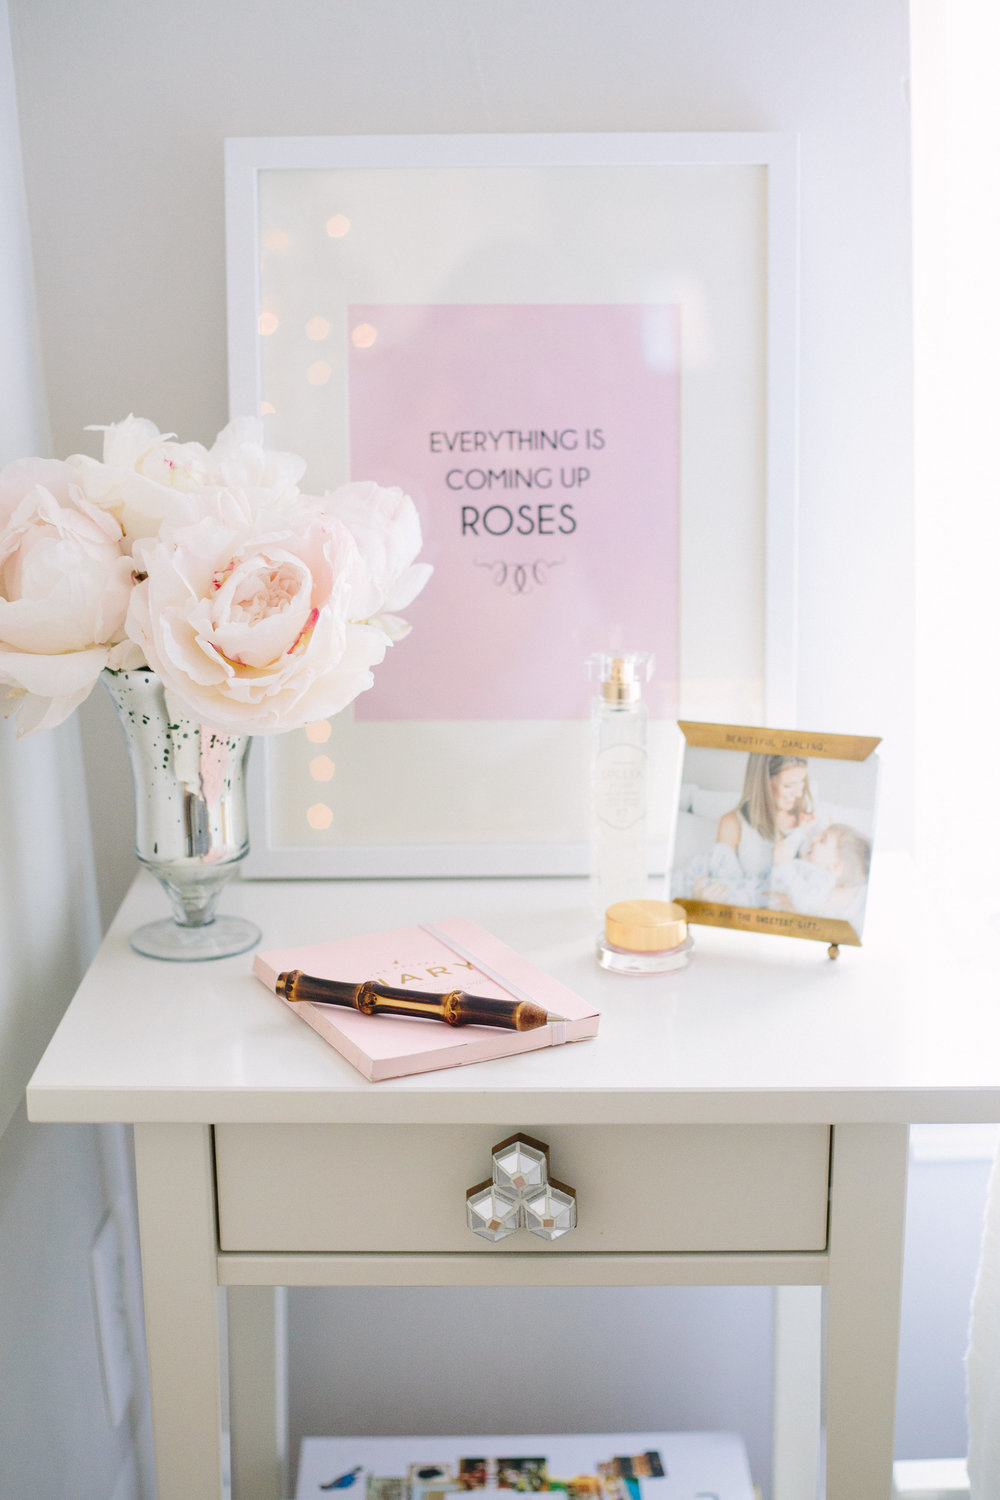 Small easel photo frame and bamboo pen fromHUDSONin the South End—sweet additions to any mommy's nightstand. Journal from Mara-Mi, Lollia At Last and Albeit Rose lip gloss fromAnthropology.